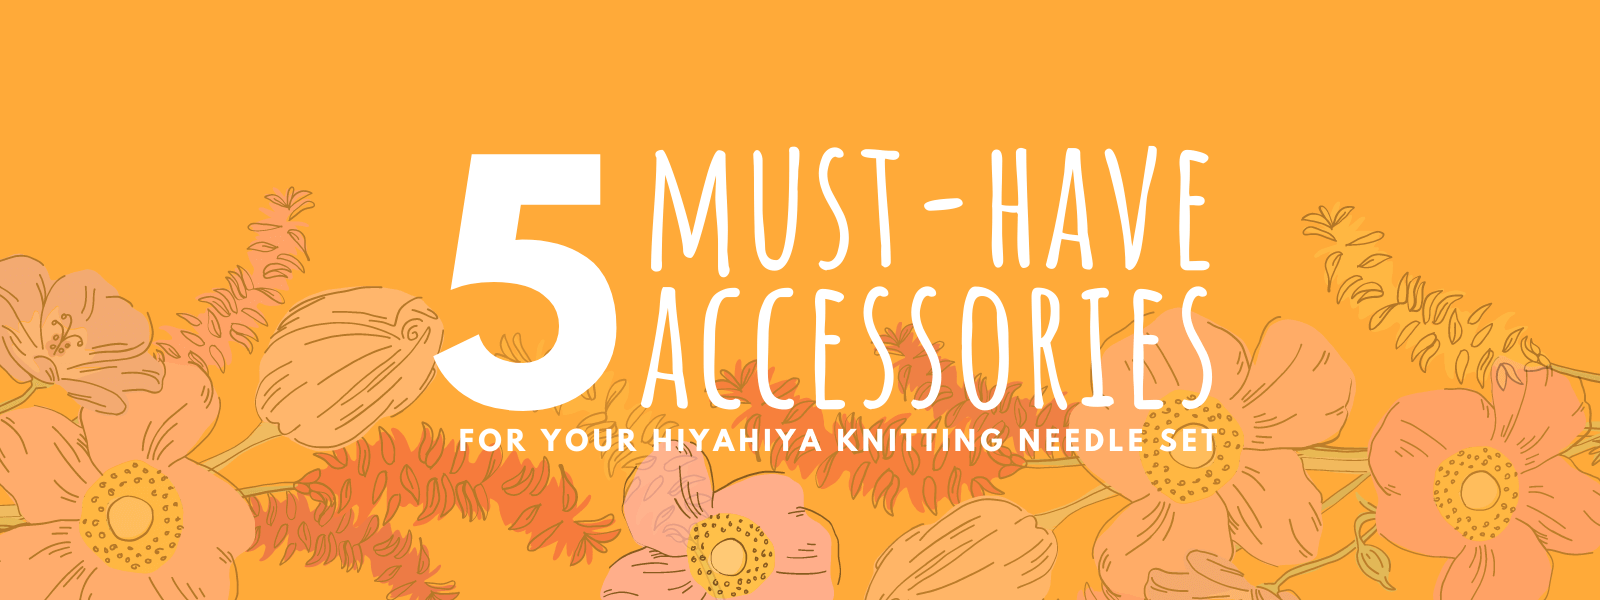 HiyaHiya Knitting accessories